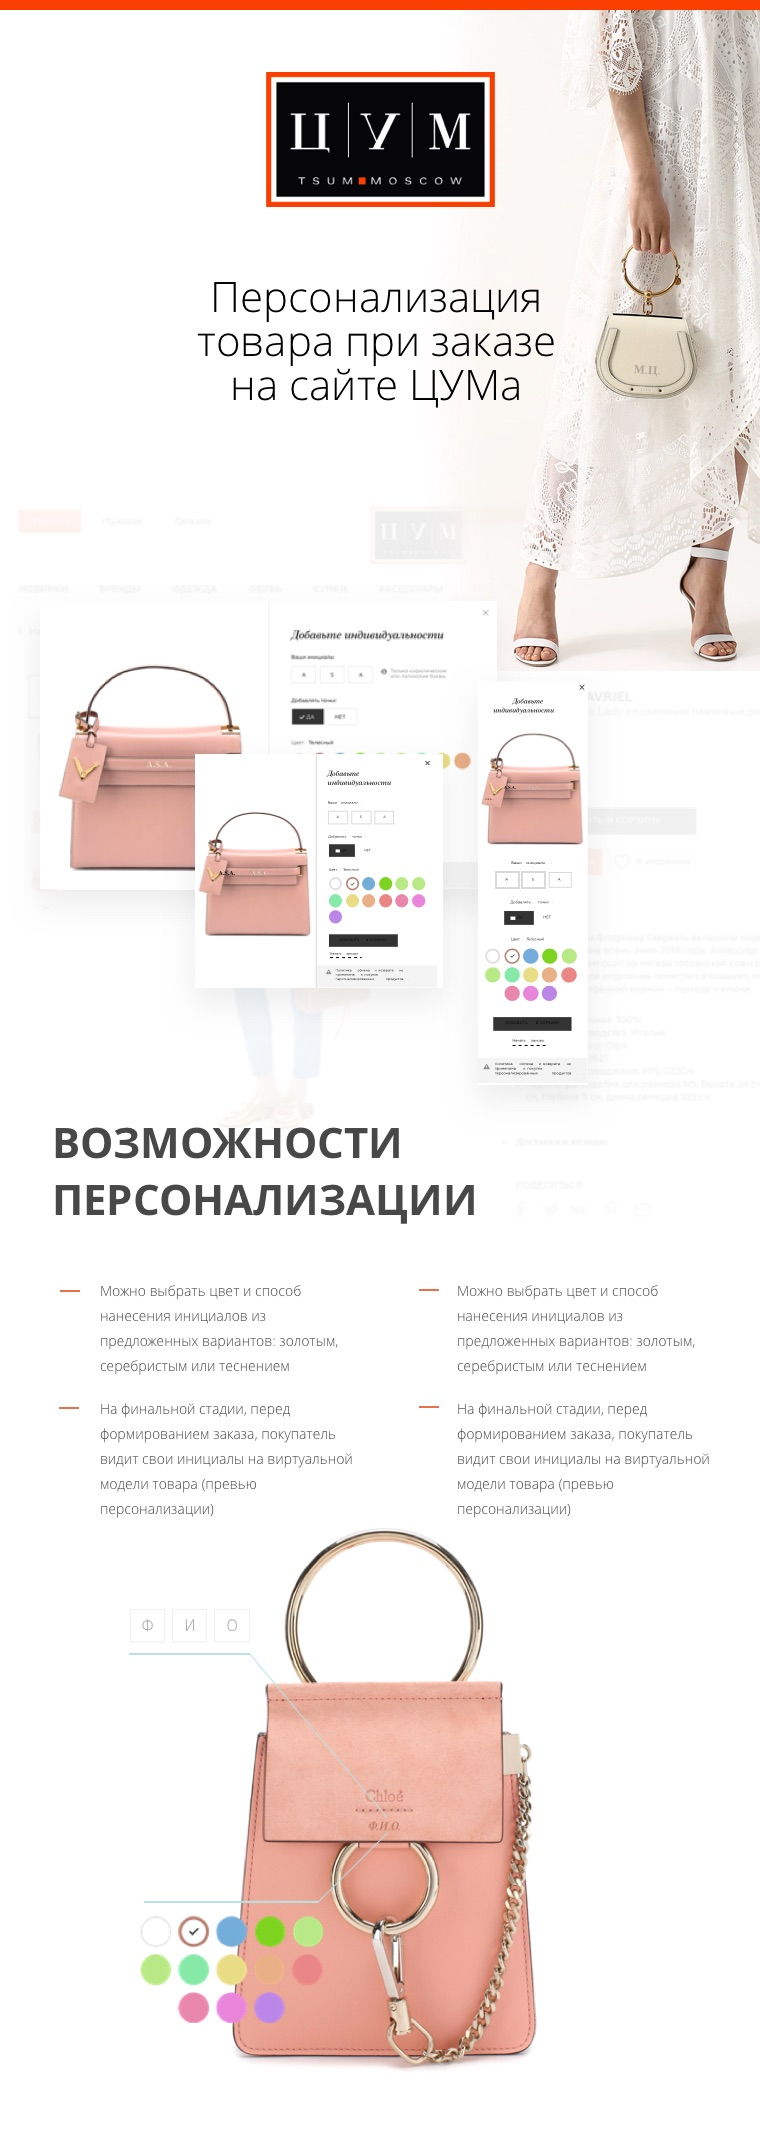 Эскиз проекта Product personalization for TSUM, Moscow